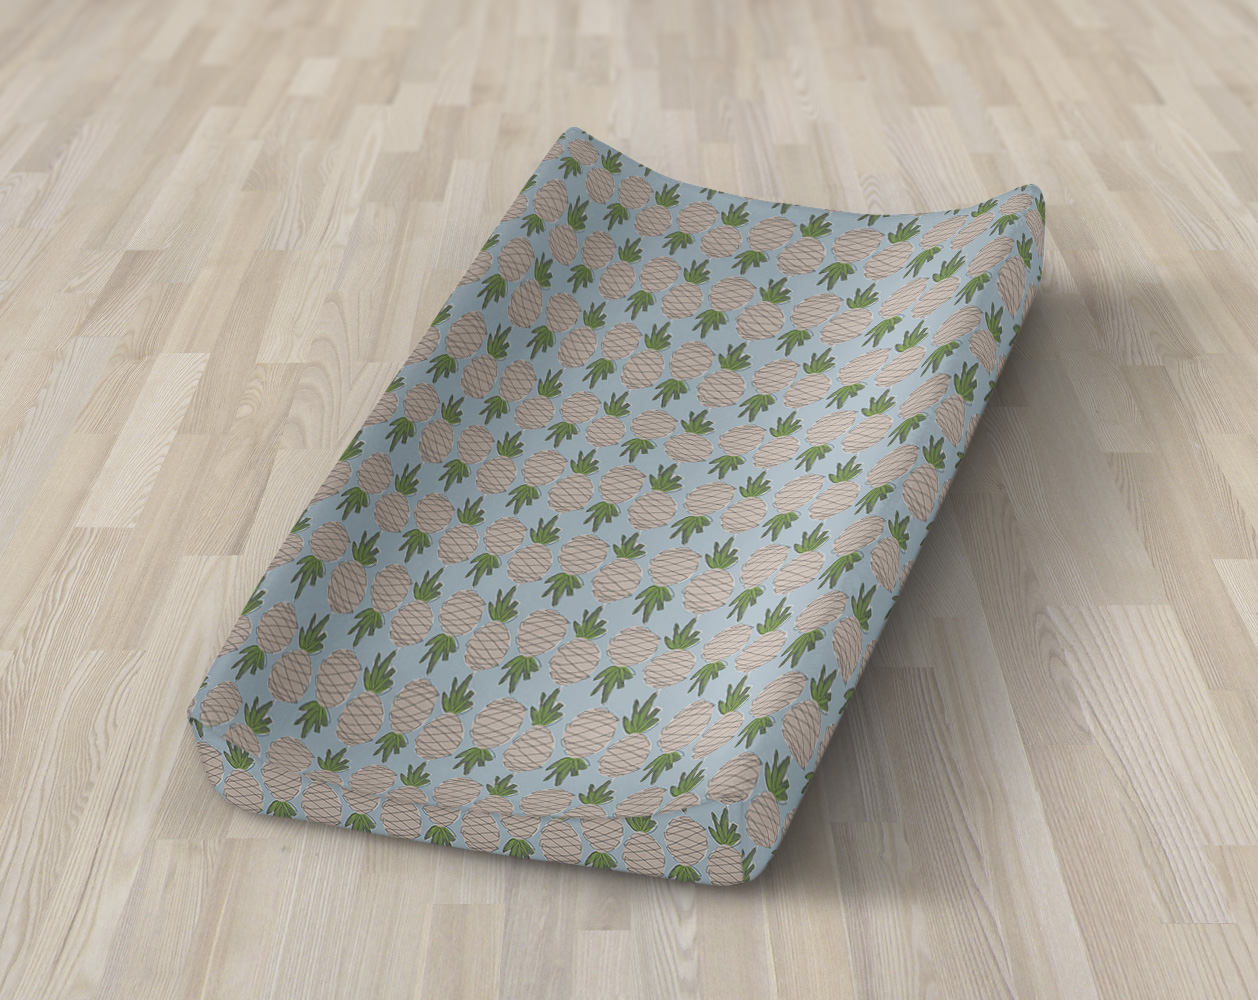 Pineapple Changing Pad Cover- Tropical Fruit Fitted Crib Sheet- Change Mat Cover- Summer Crib Bedding Set- Nursery - Island Sea Baby Shower - Dream Evergreen @DreamEvergreen